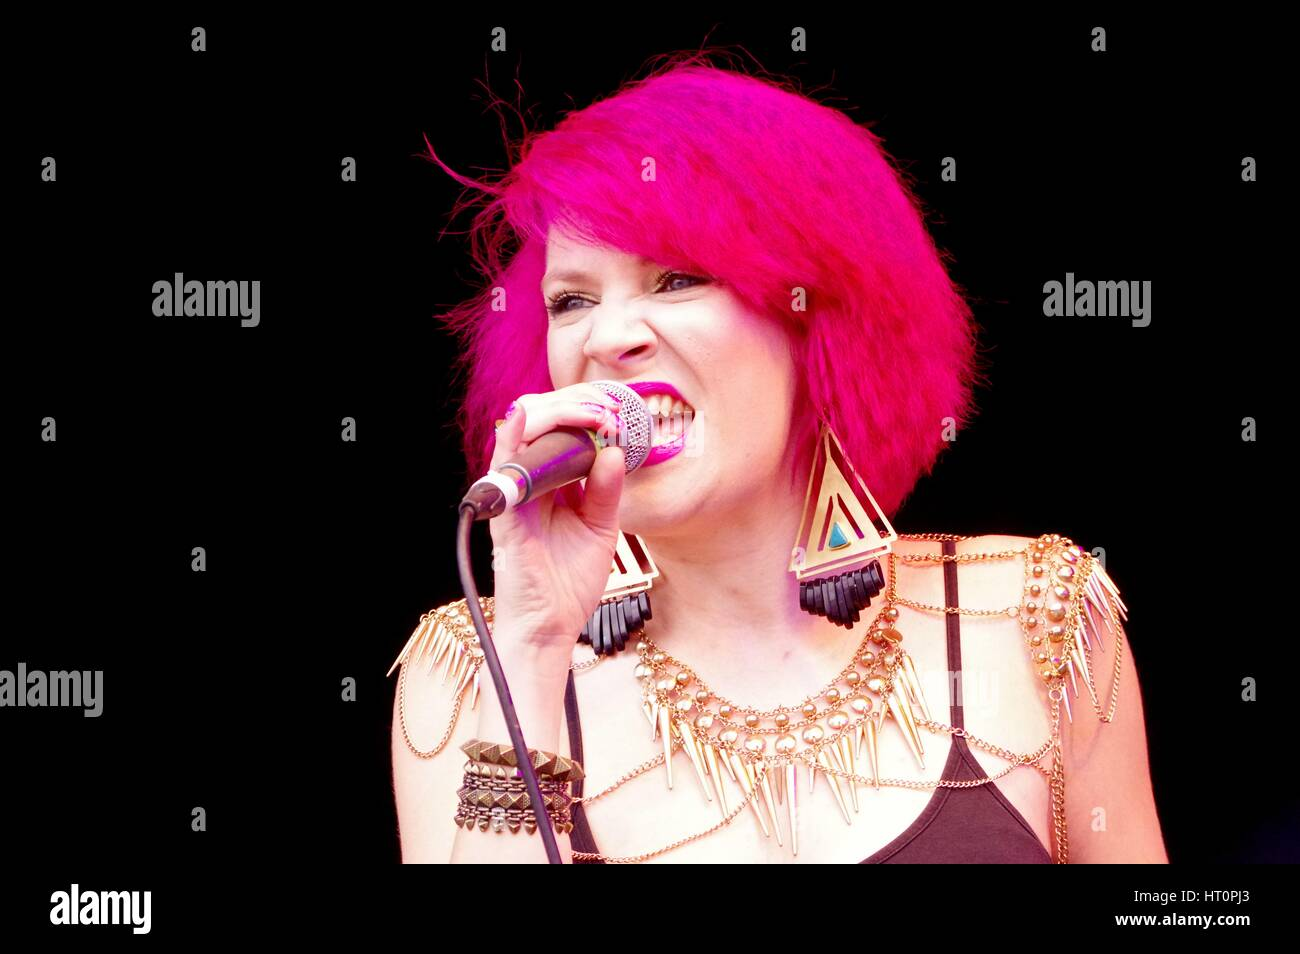 Katie Leonie, Love Supreme Jazz Festival, Glynde Place, East Sussex, 2014. Artist: Brian O'Connor. - Stock Image